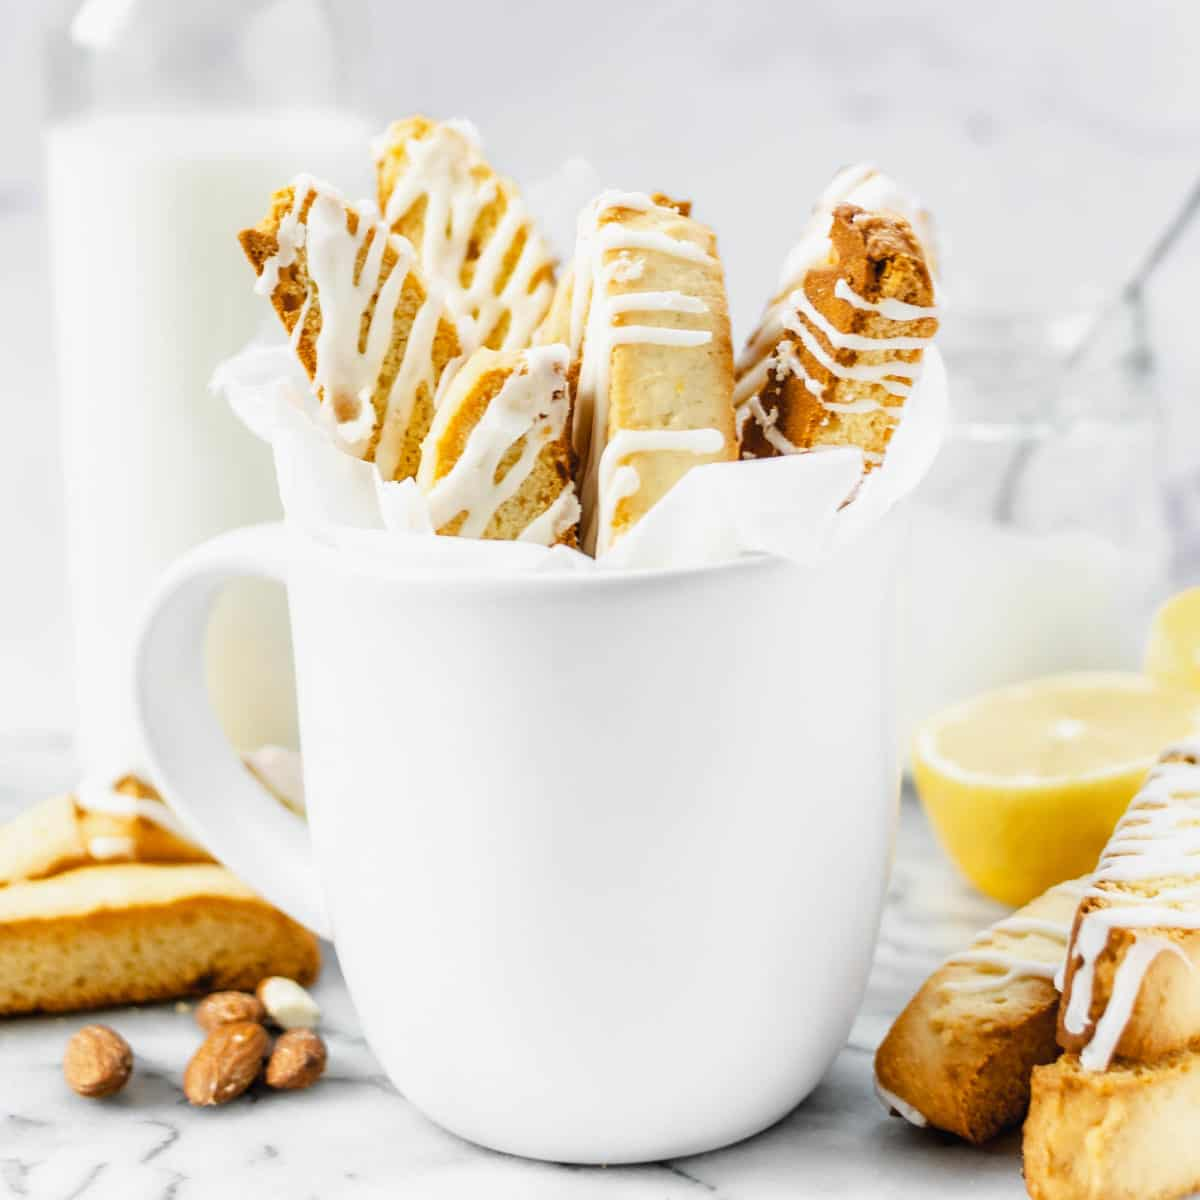 Several biscotti cookies in a mug.